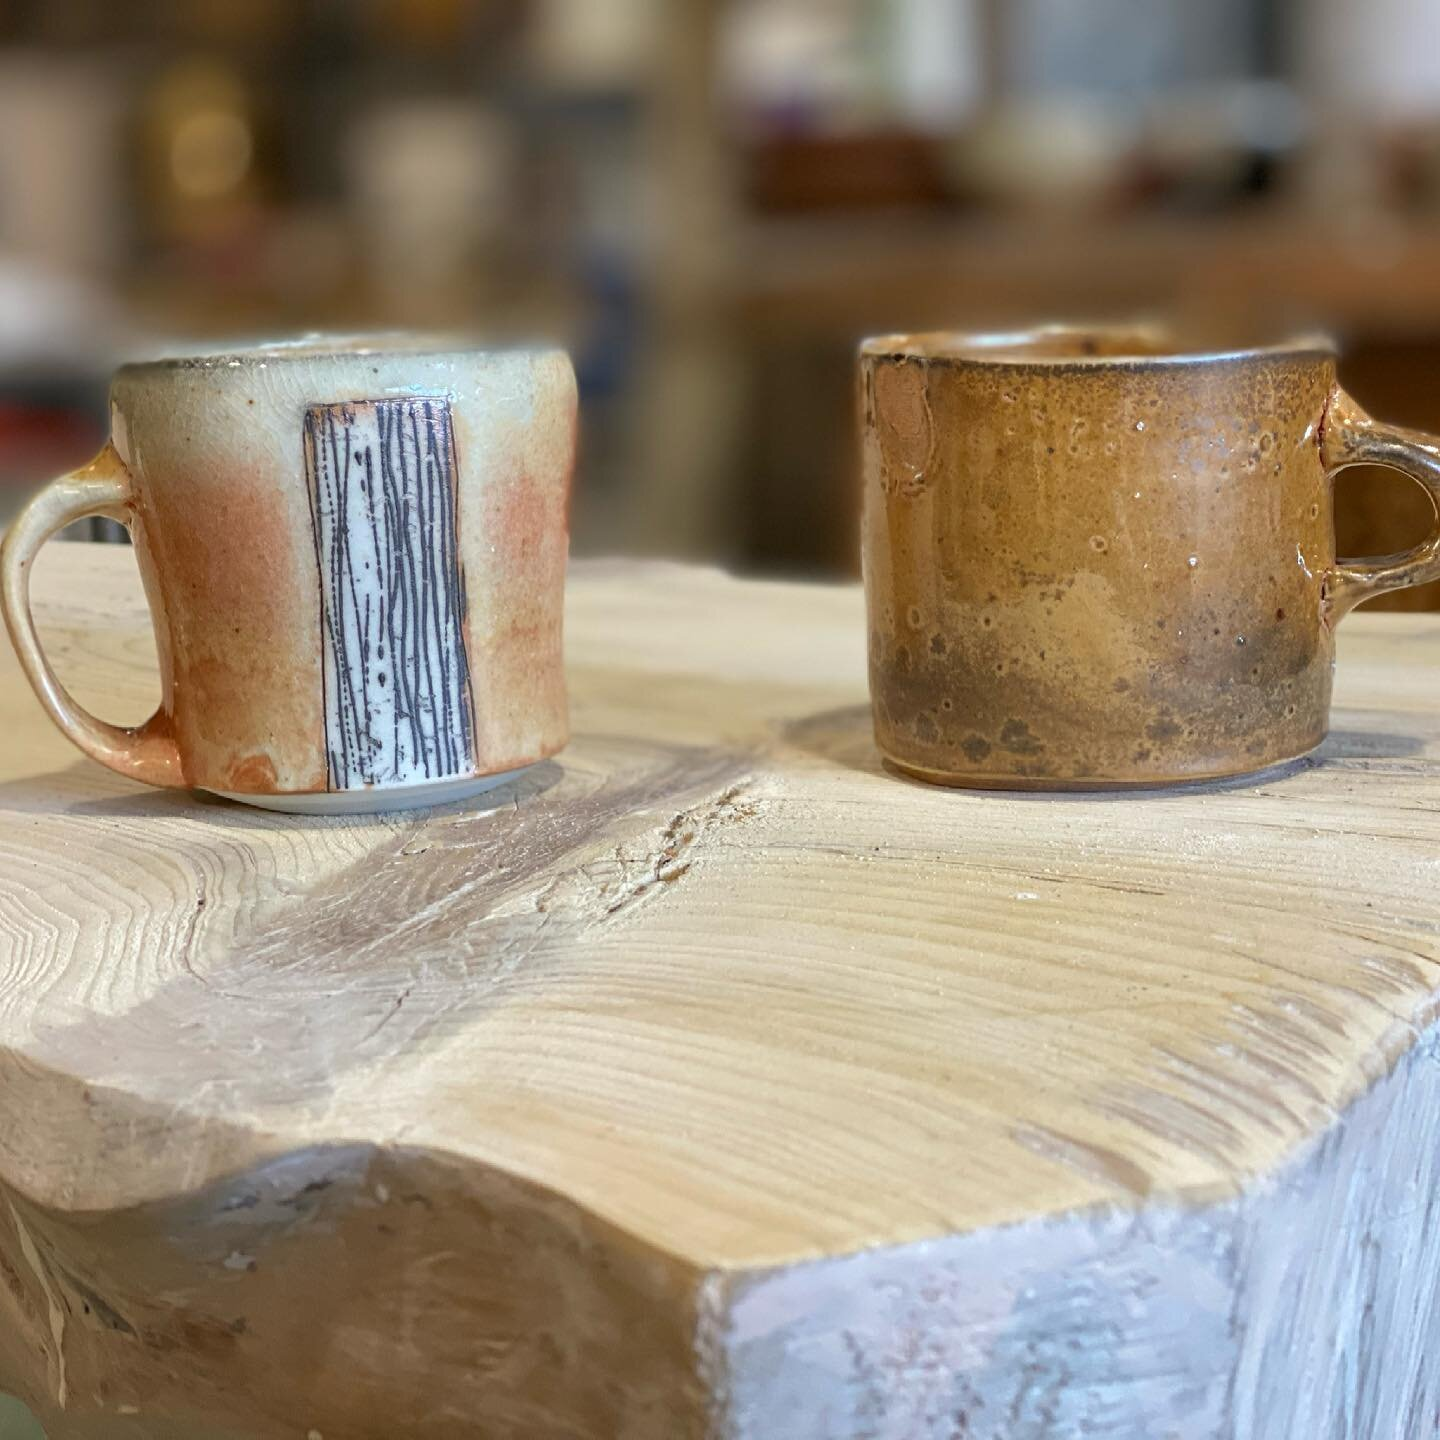 9am this morning, April 1st! We're gonna drop: 50 featured pots and NFT's! There are a few spots in our Spring Clay Class still open too. Come build some momentum with us. Accepting #crytocurrency  on select work. Thanks for looking Happy April Fool's day! #proudofourstudents #buildingconfidence #mnpotters #ceramics #pottery #ethereum #bitcoin #opensea #nftart @opensea